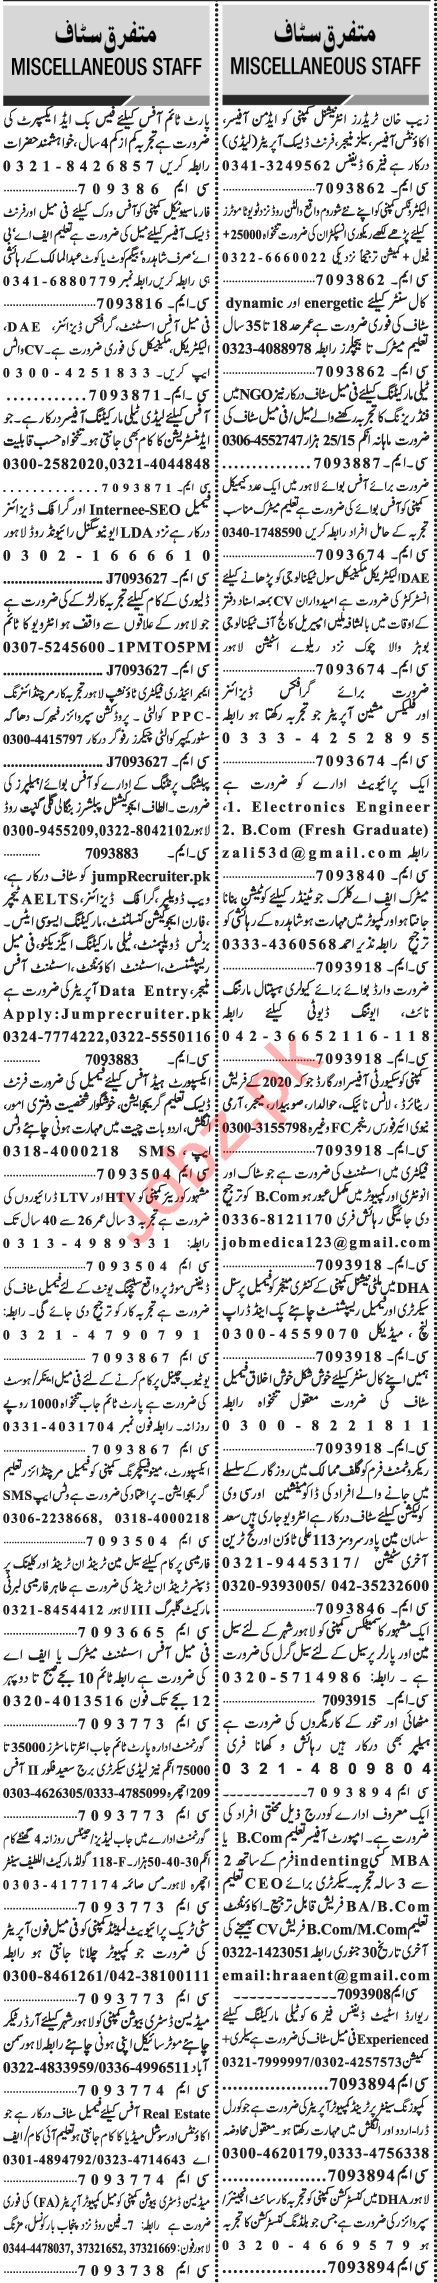 Jang Sunday Classified Ads 24 Jan 2021 for Multiple Staff